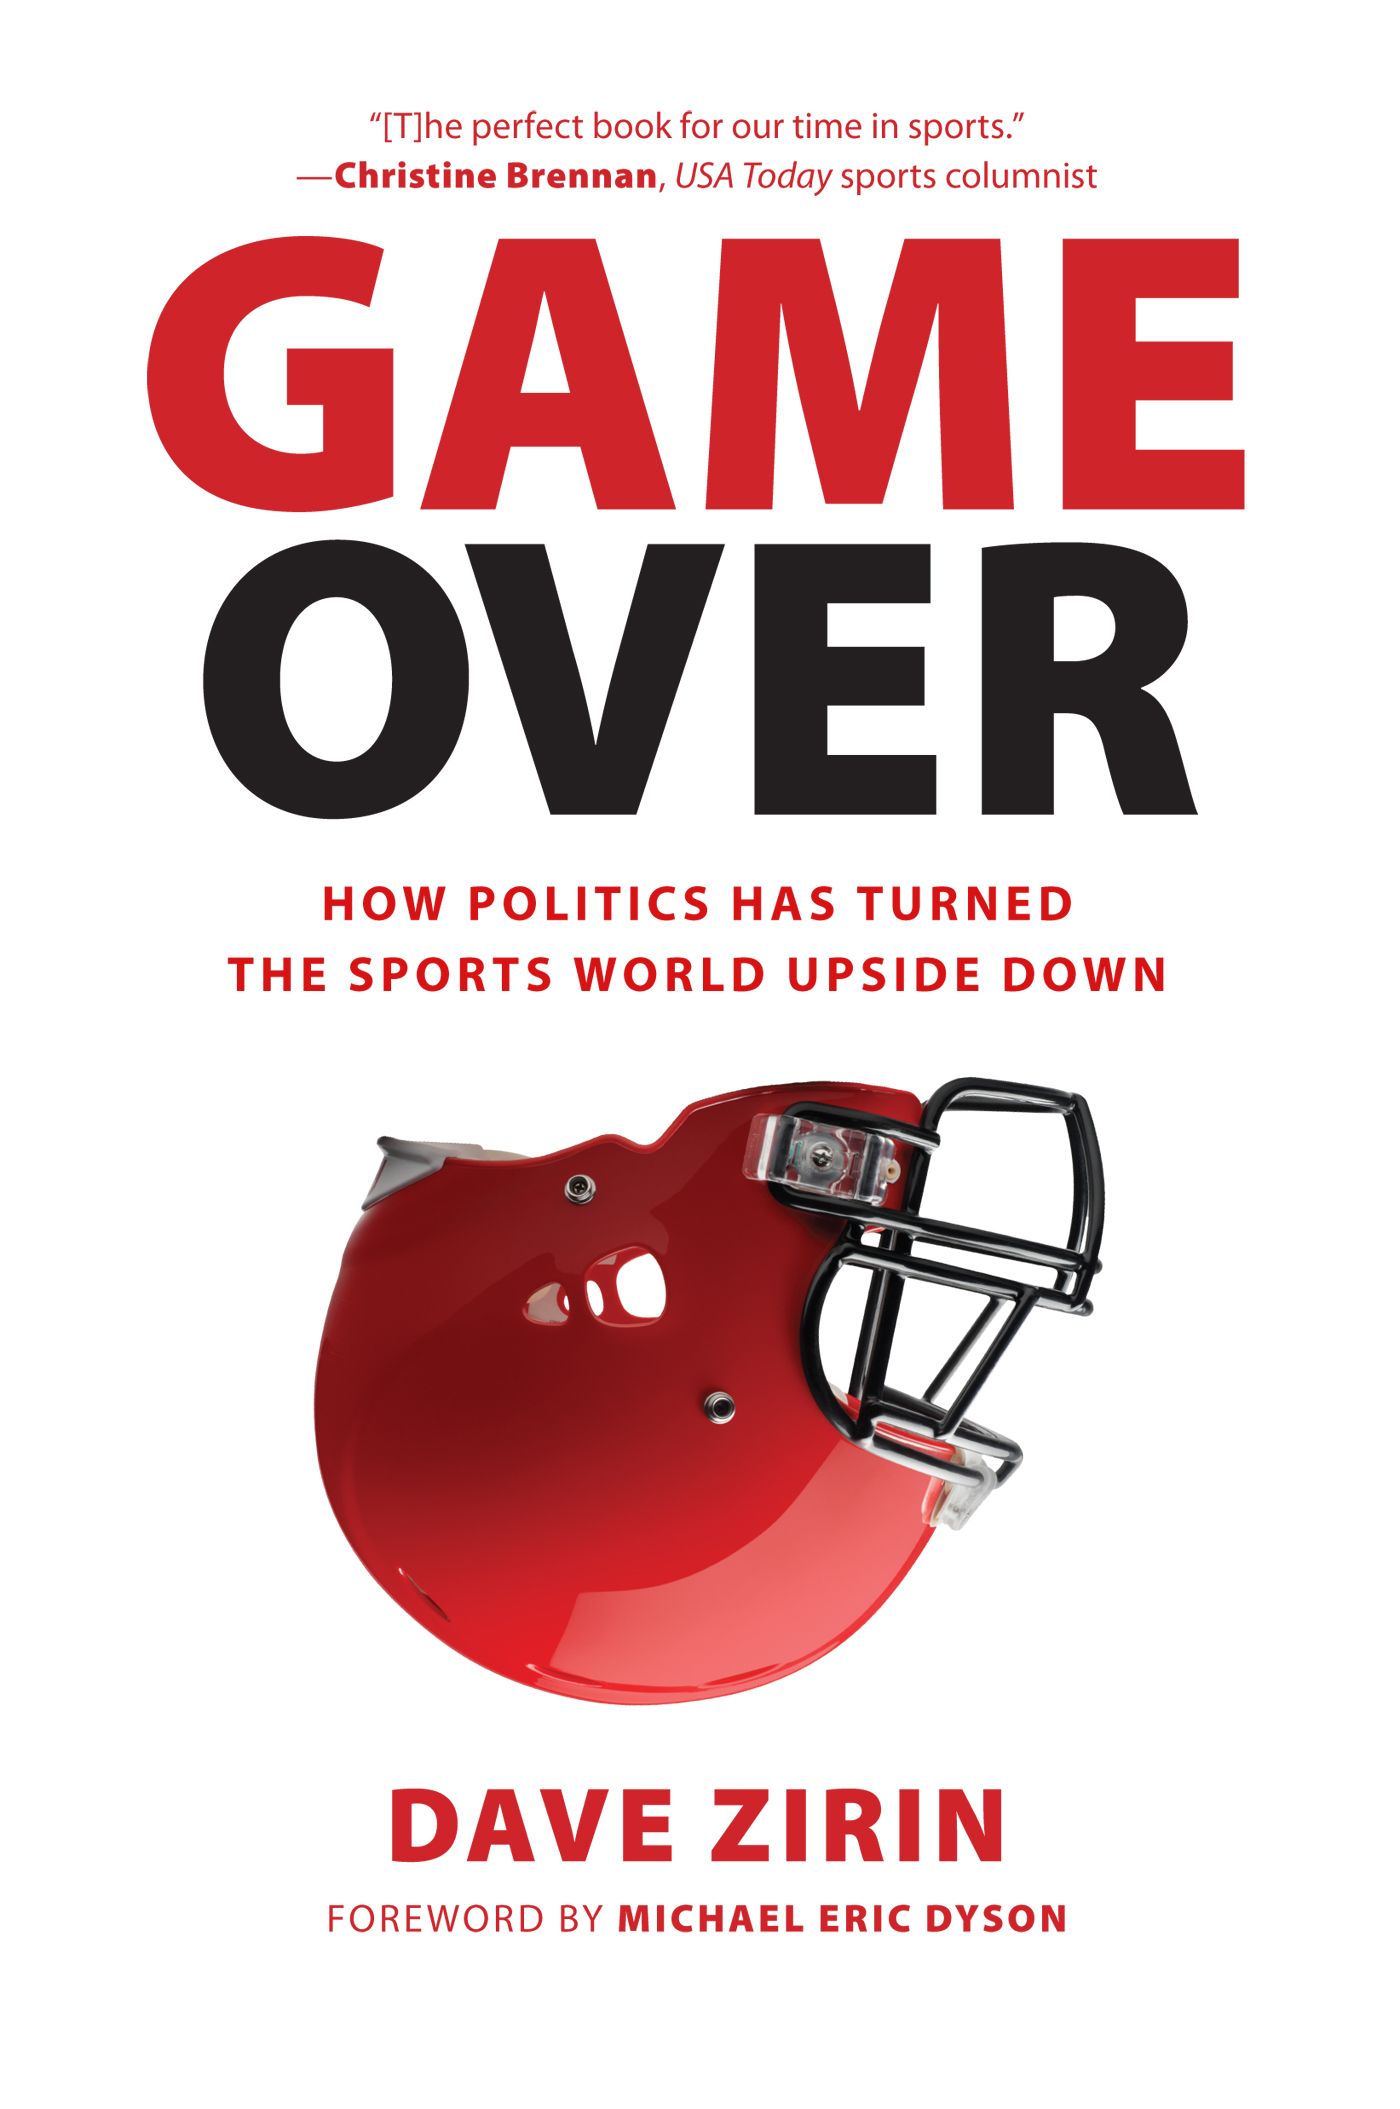 Game Over: How Politics Has Turned the Sports World Upside Down